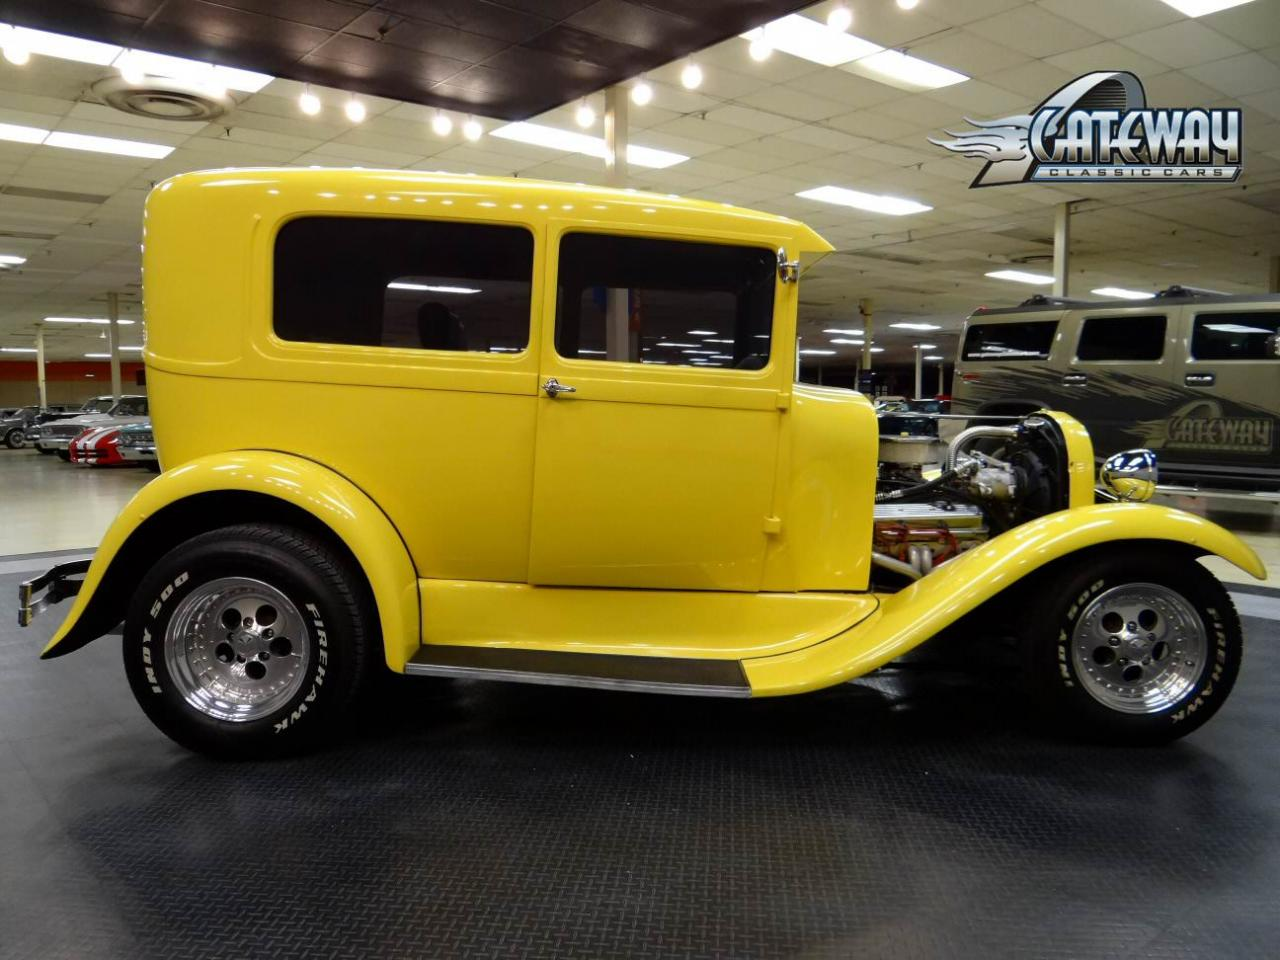 gateway classic cars classic cars for sale muscle cars. Cars Review. Best American Auto & Cars Review